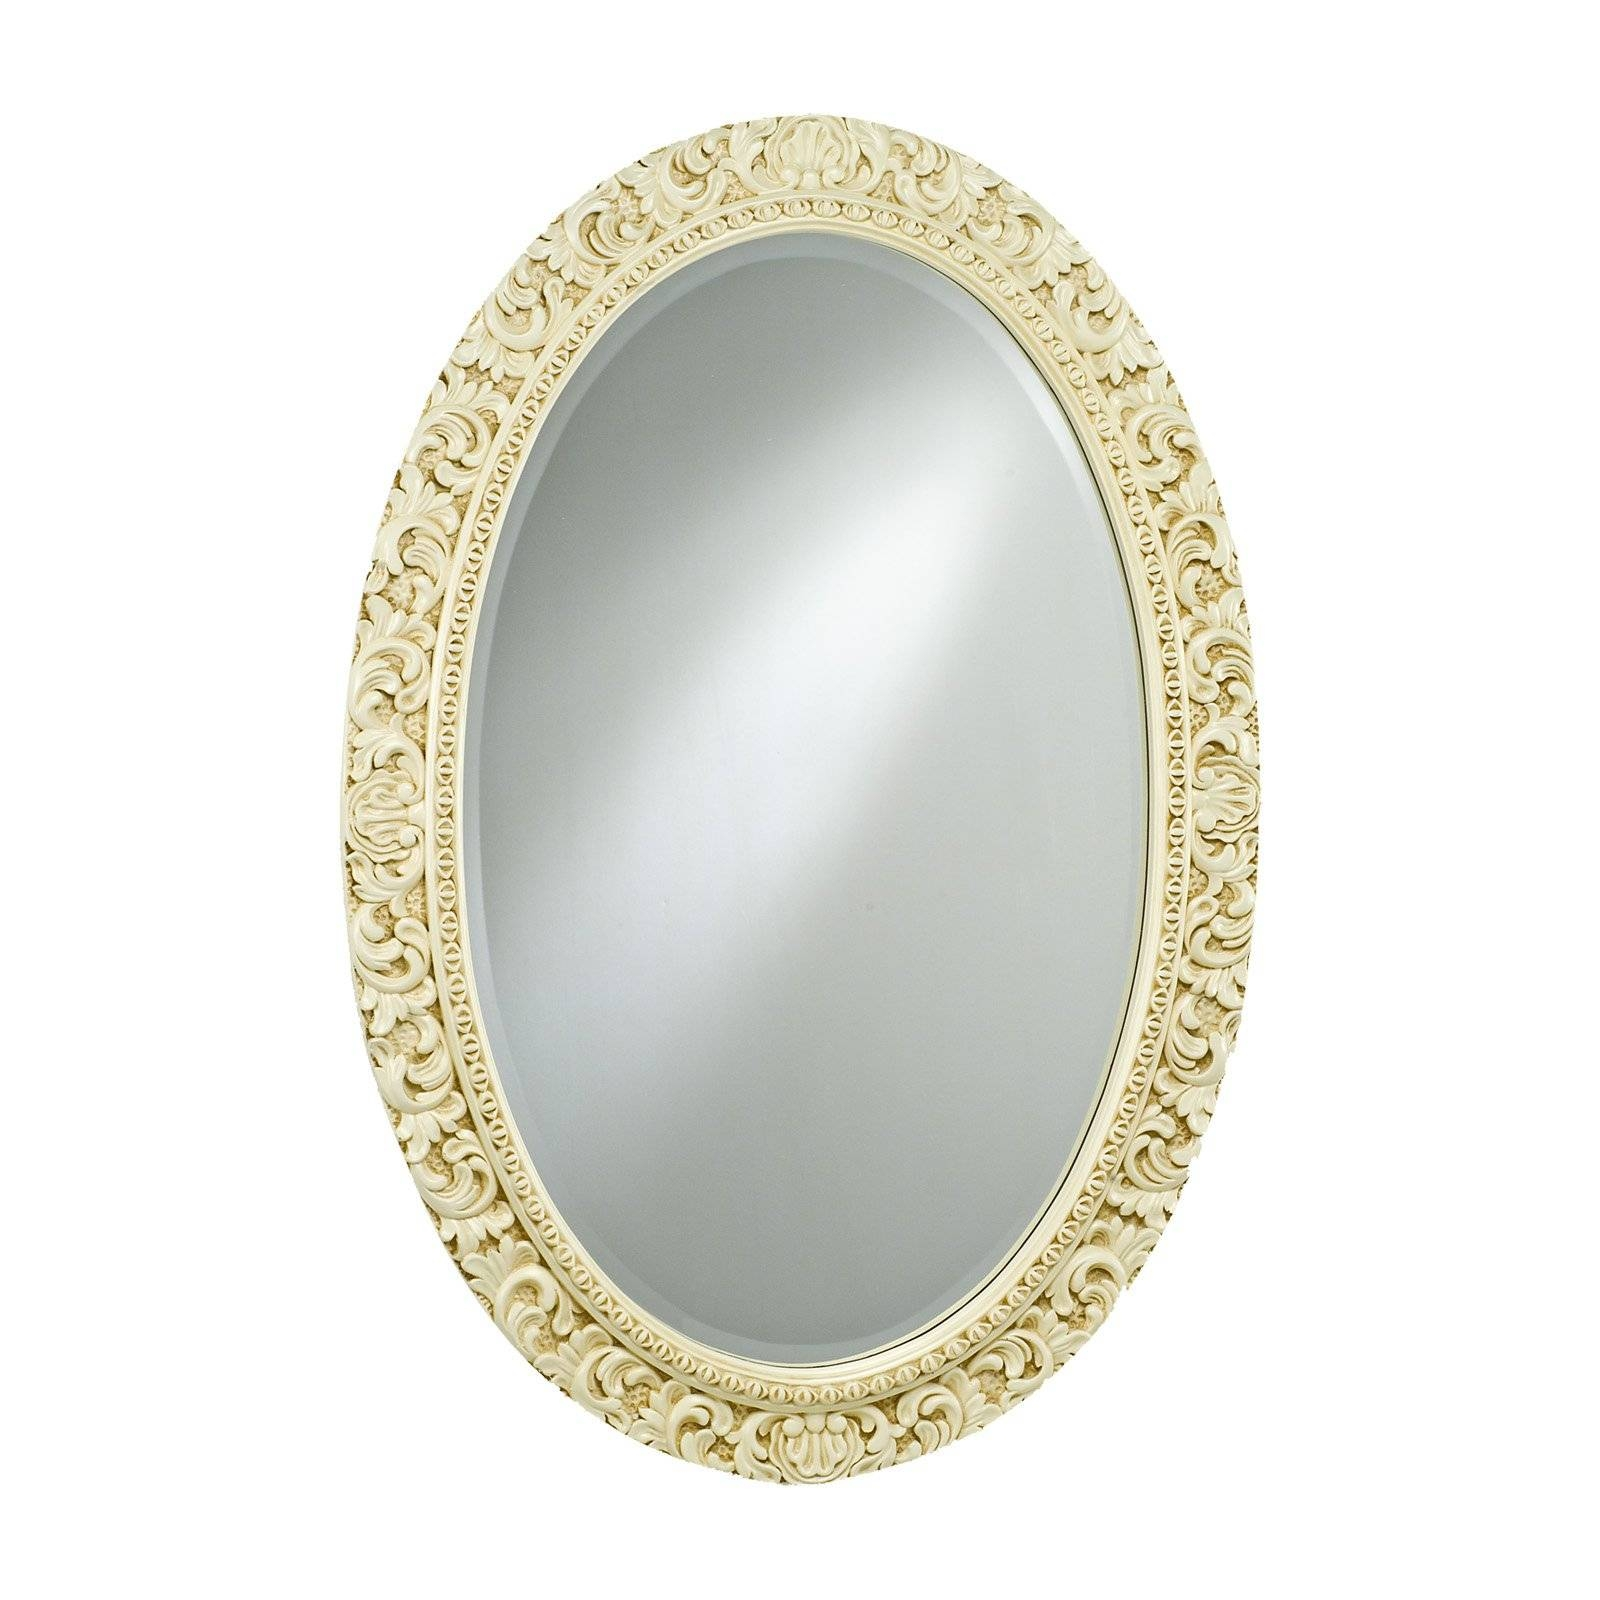 Timeless Tradition Ornate Oval Wall Mirror - 24W X 36H In. | Hayneedle with Ornate Oval Mirrors (Image 22 of 25)